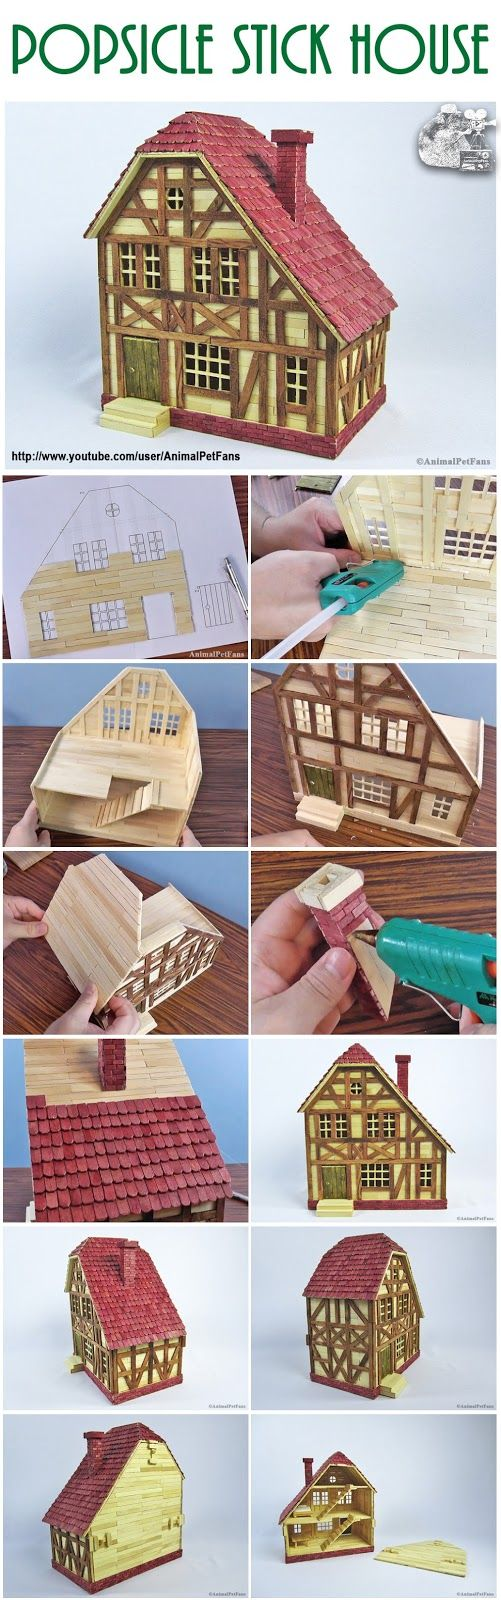 Popsicle stick house for hamster Construindo